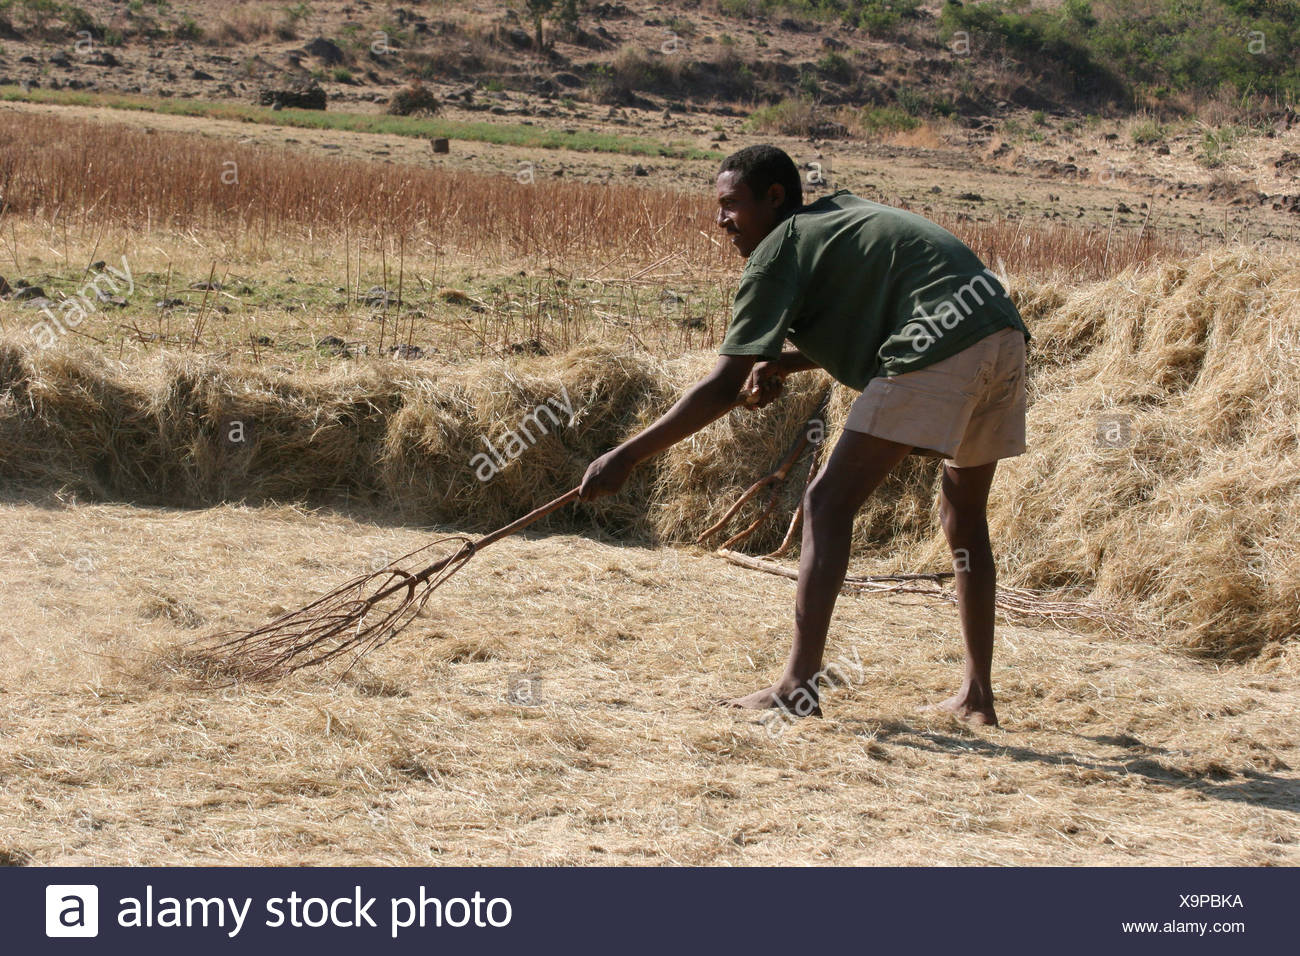 Africa Ethiopia Konso a crude wooden pitchfork - Stock Image